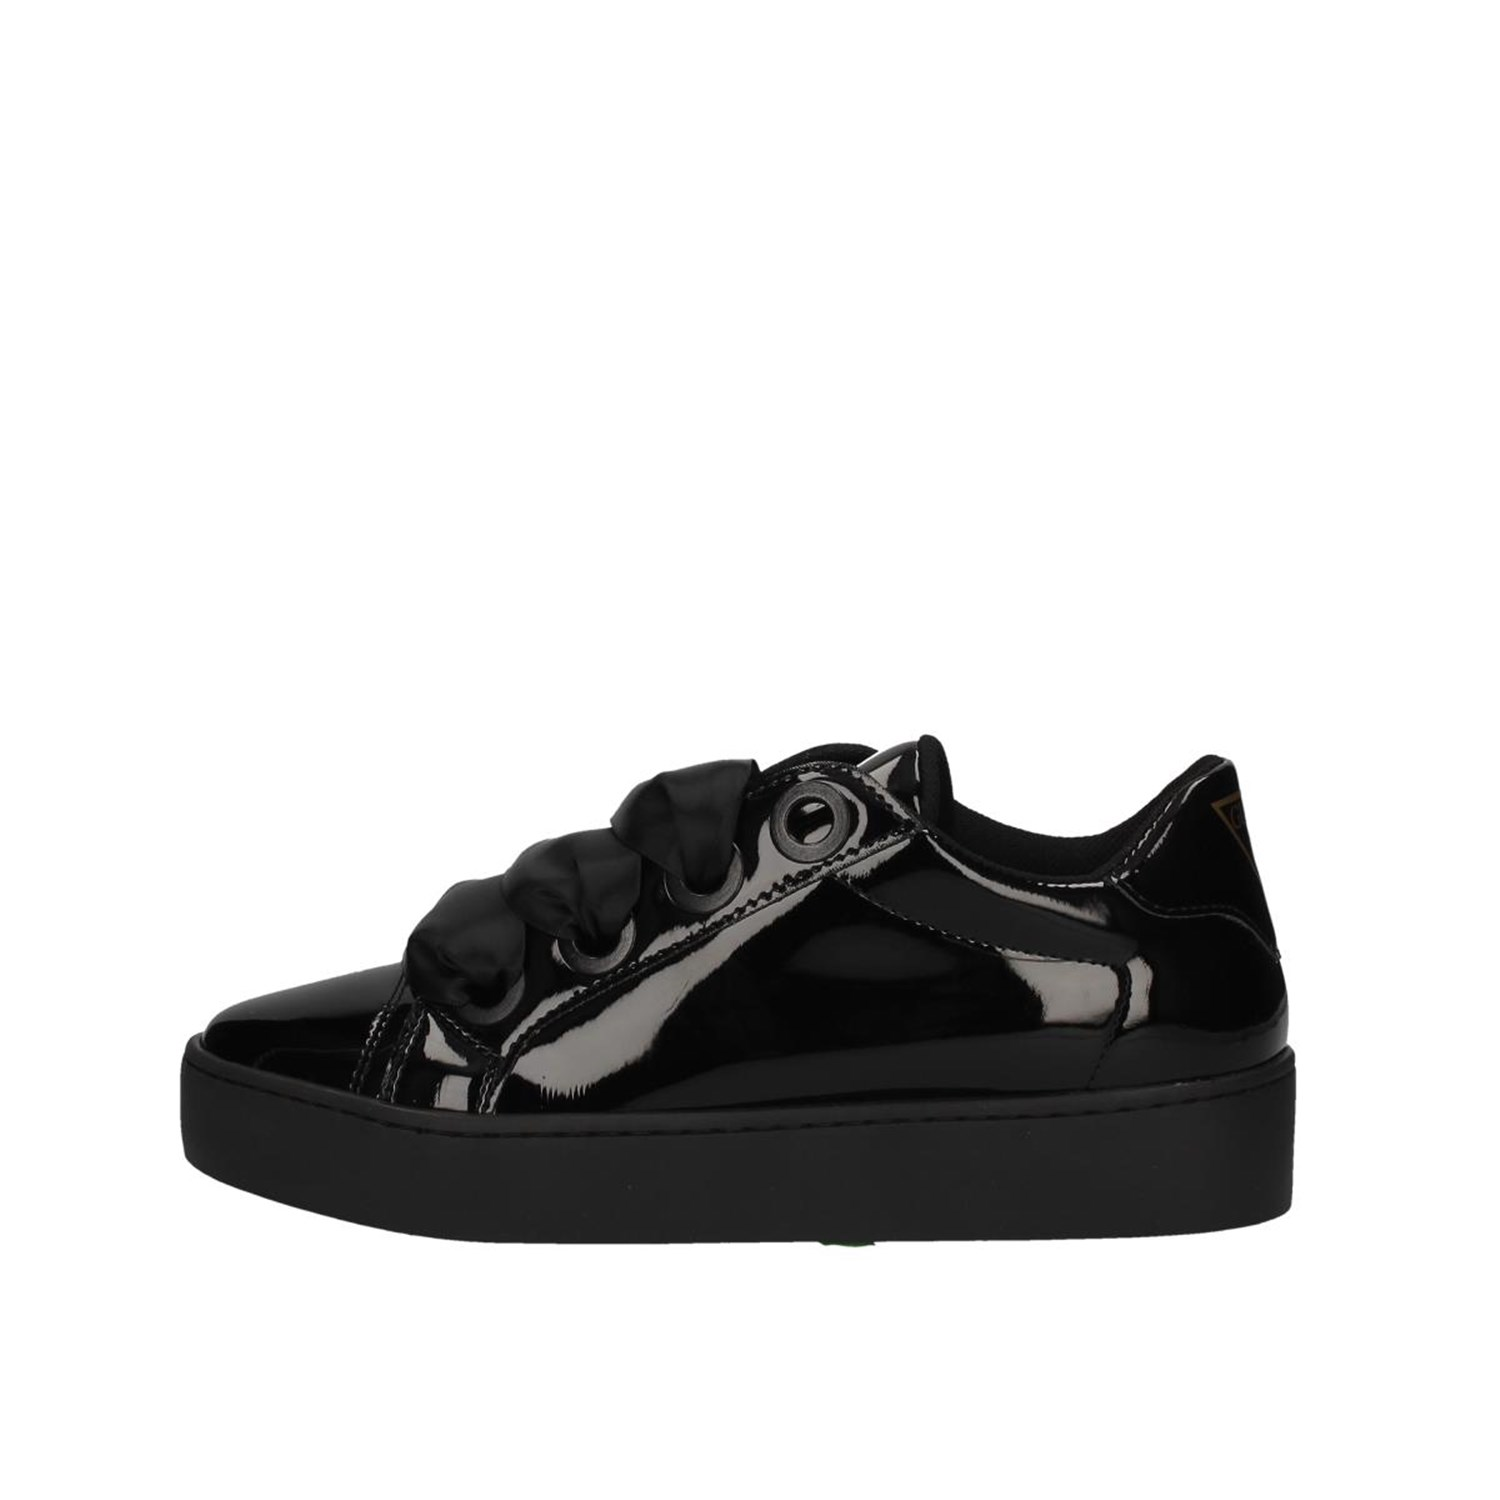 Guess Flurn1ele12 Black Shoes Woman